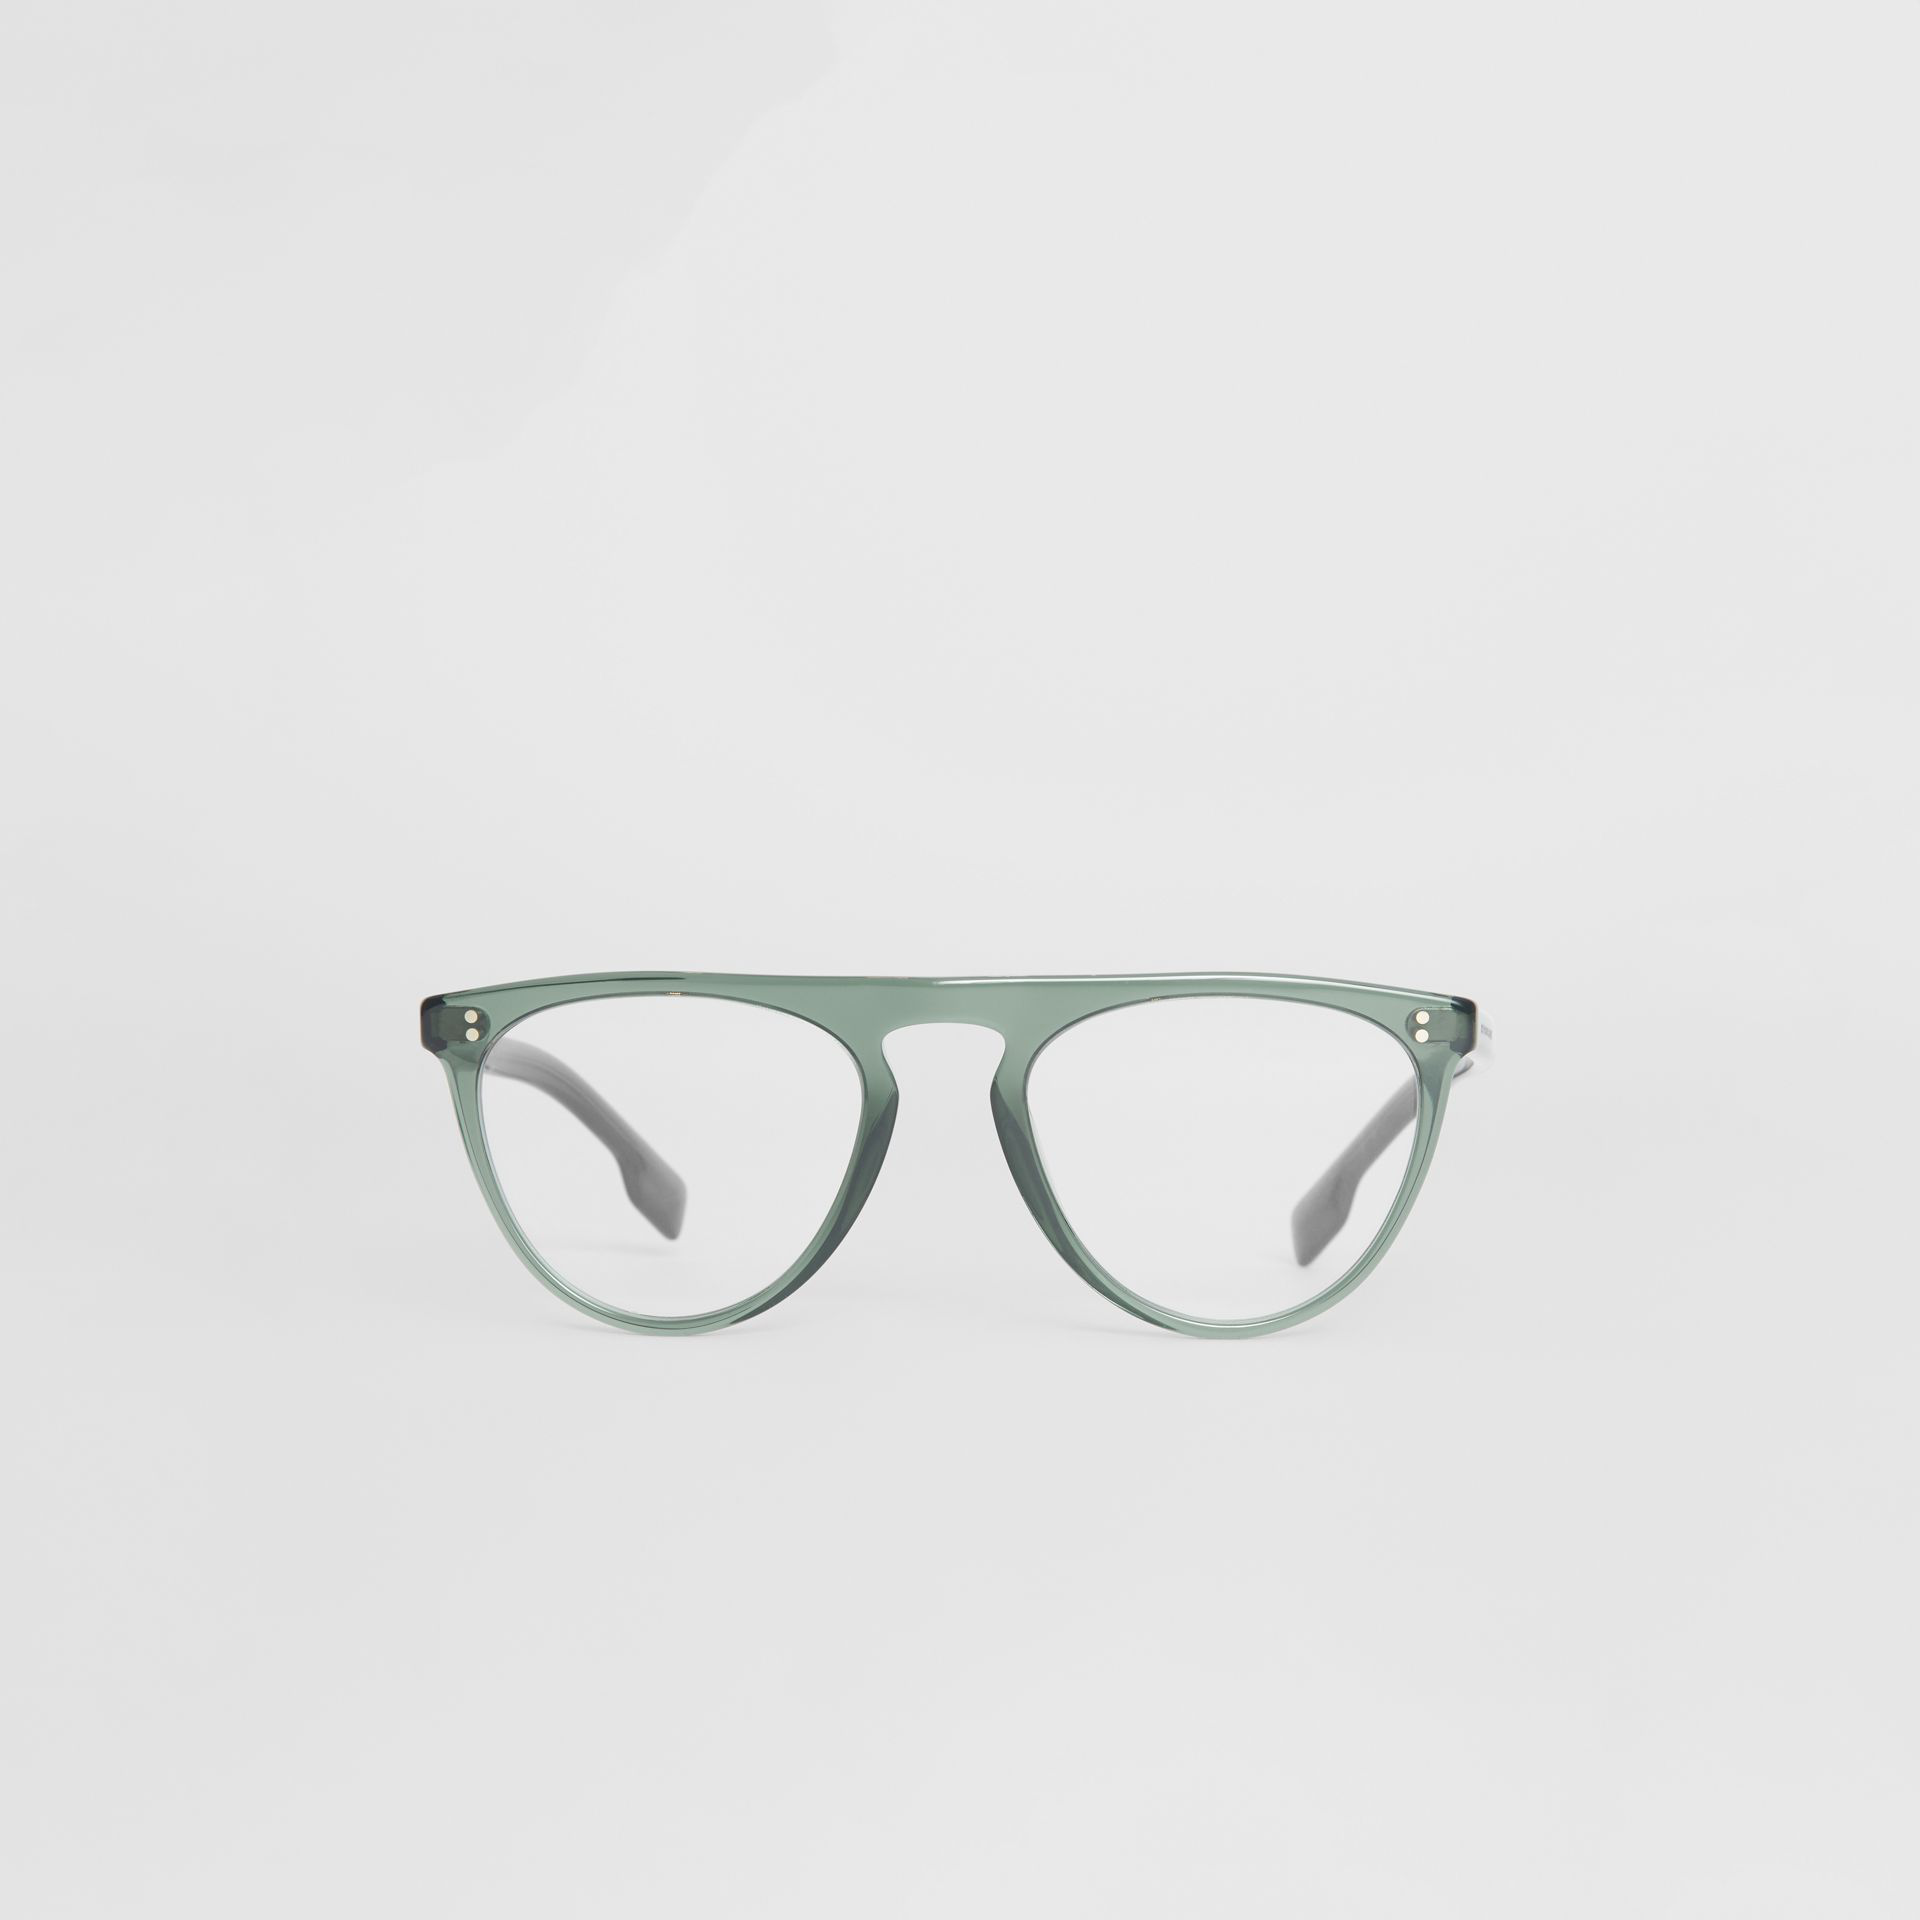 89b1ef711b6 Burberry Keyhole D-Shaped Optical Frames In Green